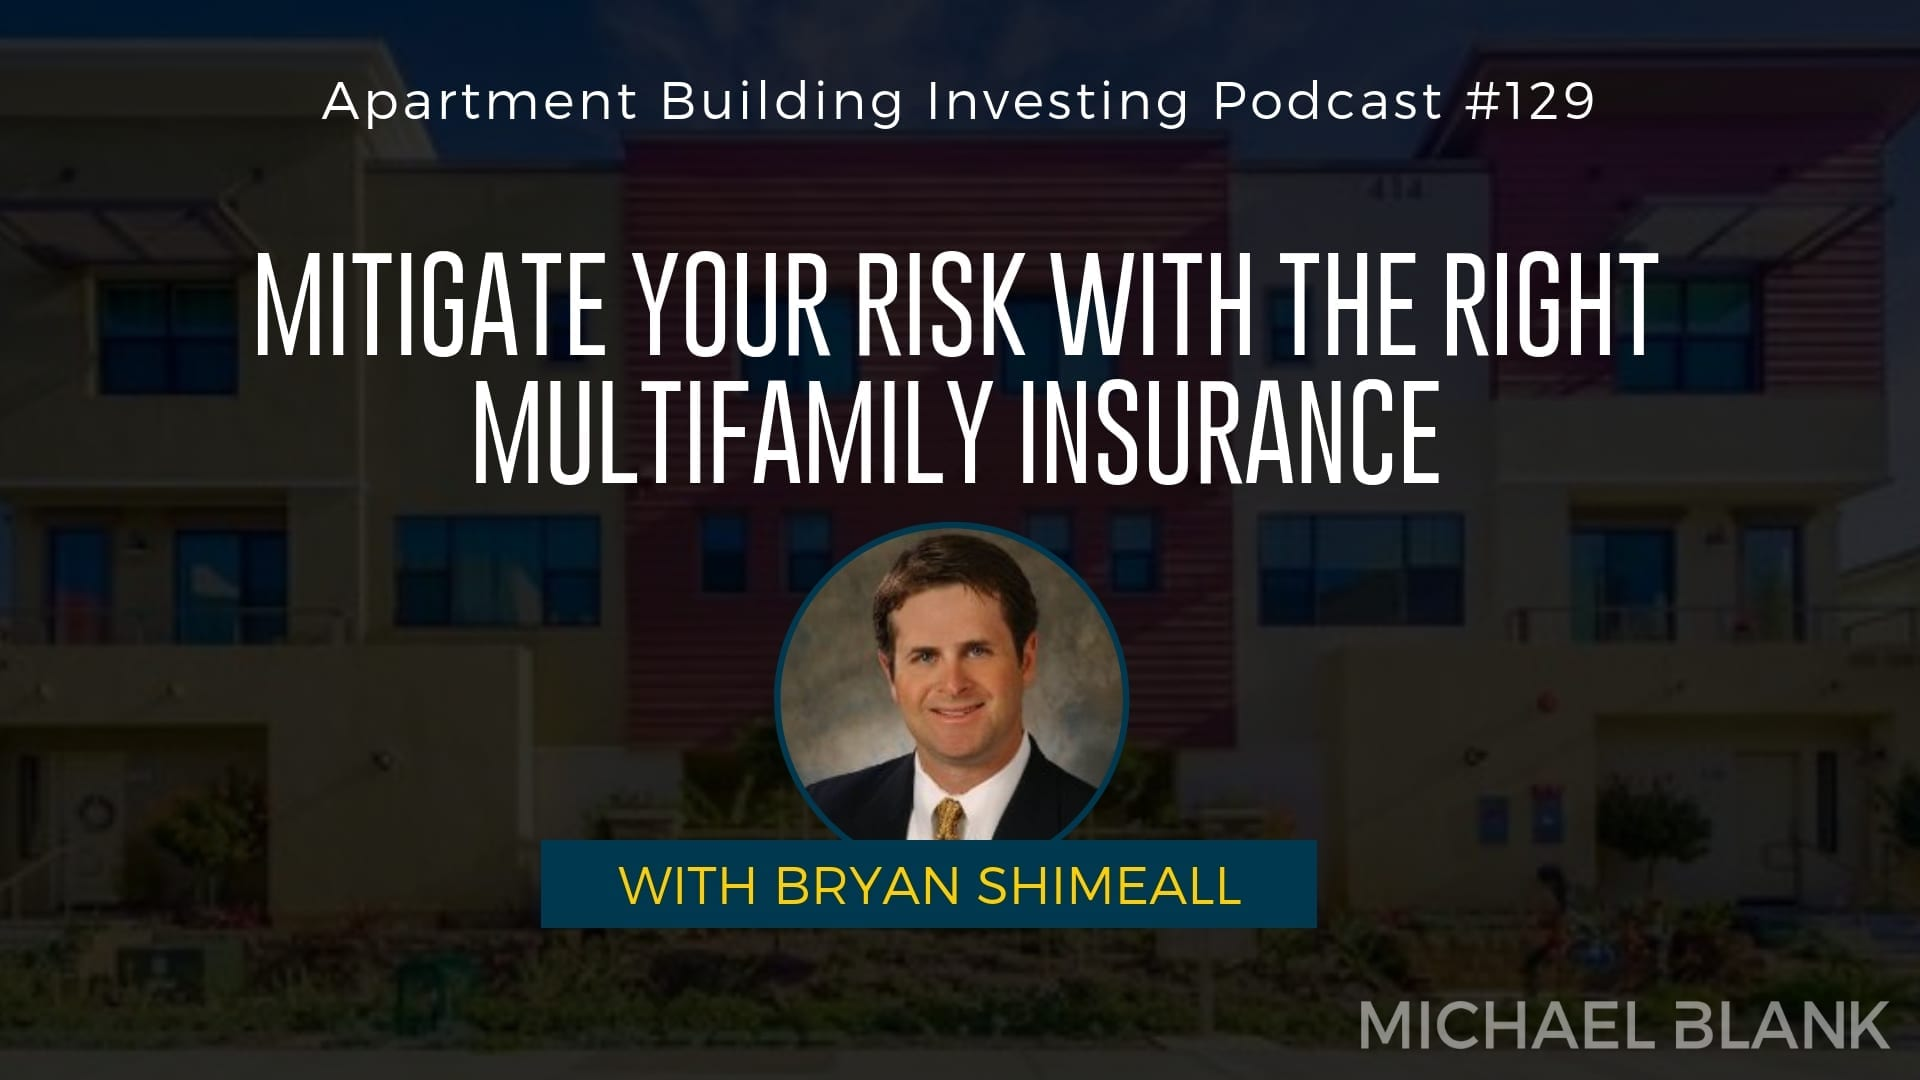 MB 129: Mitigate Your Risk with the Right Multifamily Insurance – With Bryan Shimeall